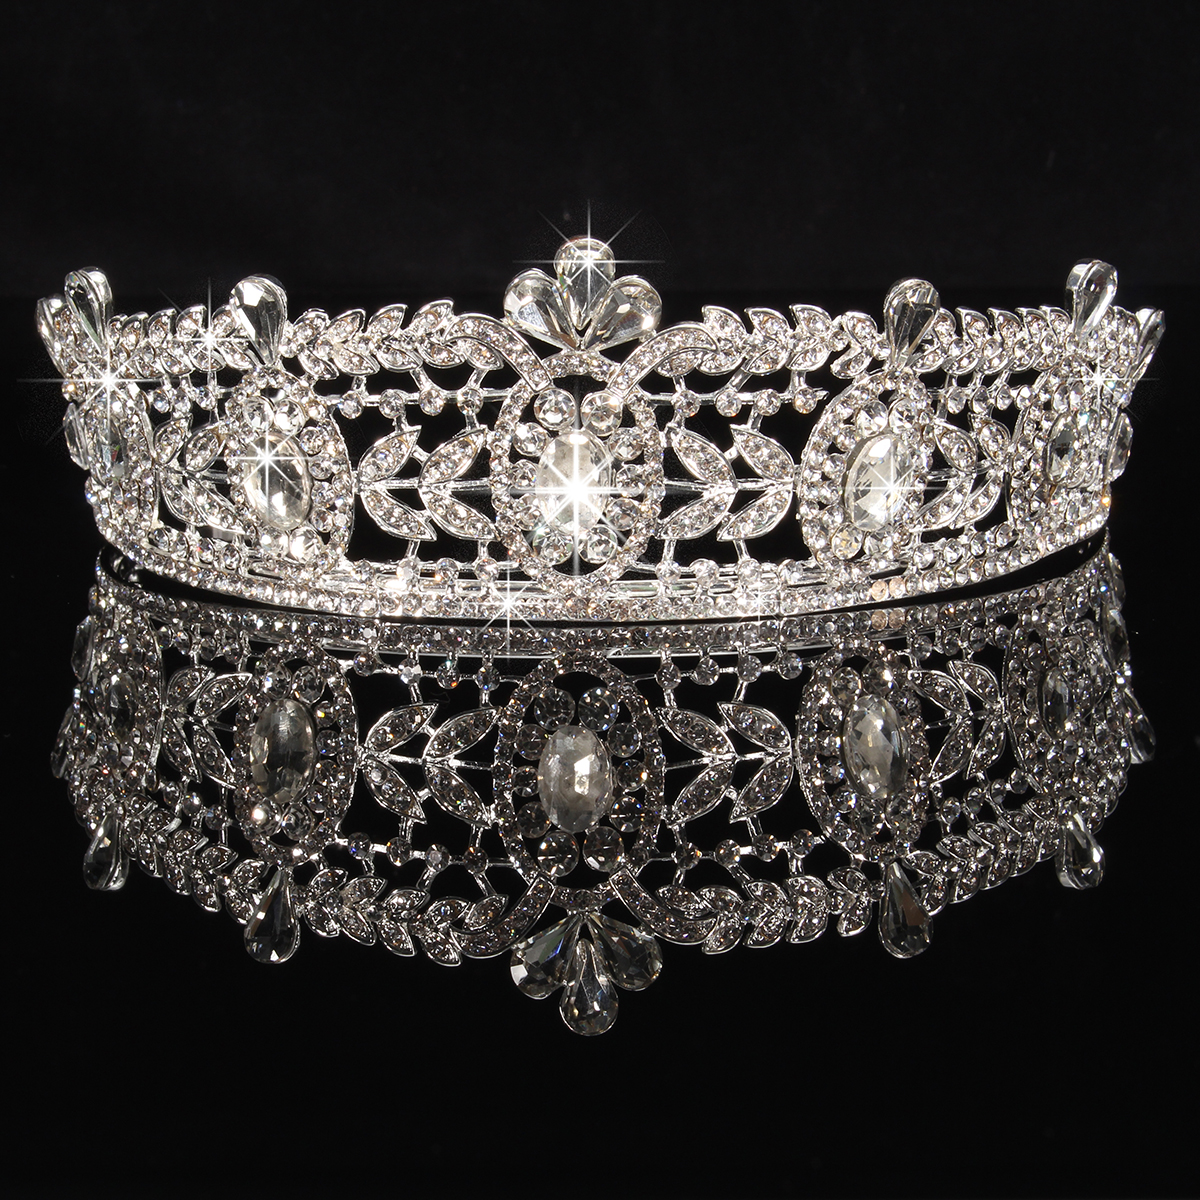 Bride Rhinestone Crystal Princess Queen Crown Tiara Head Jewelry Wedding Party Prom Headpiece